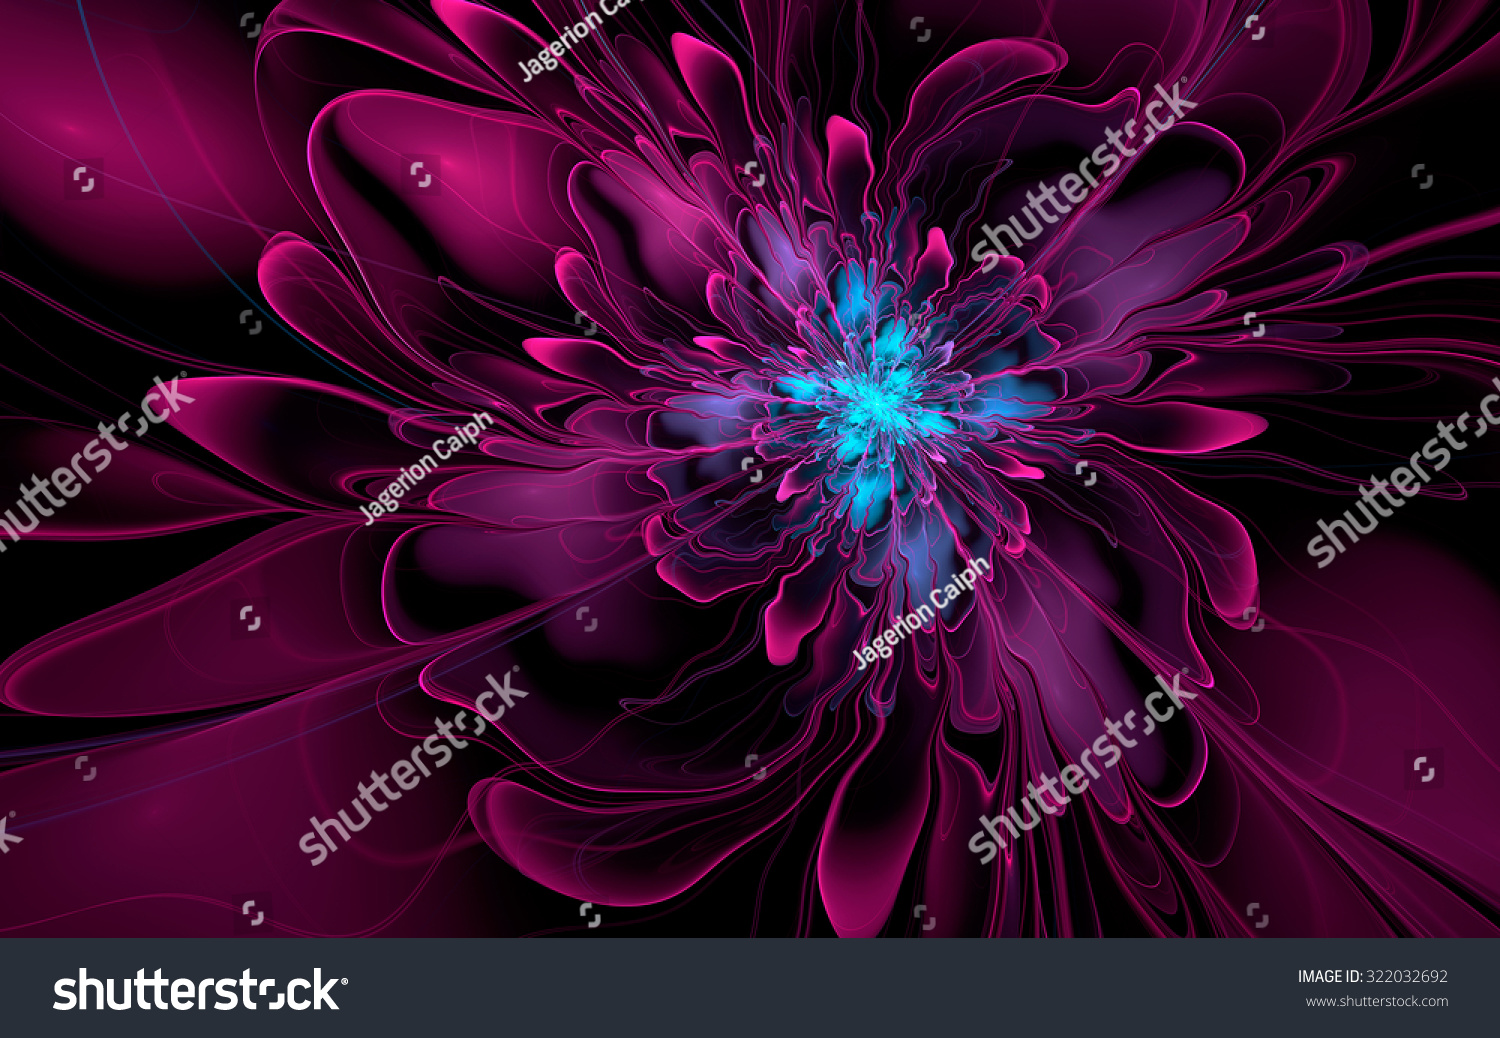 Abstract Fractal Purple Cyan Silky Flower On Black Background For Desktop Wallpaper Or